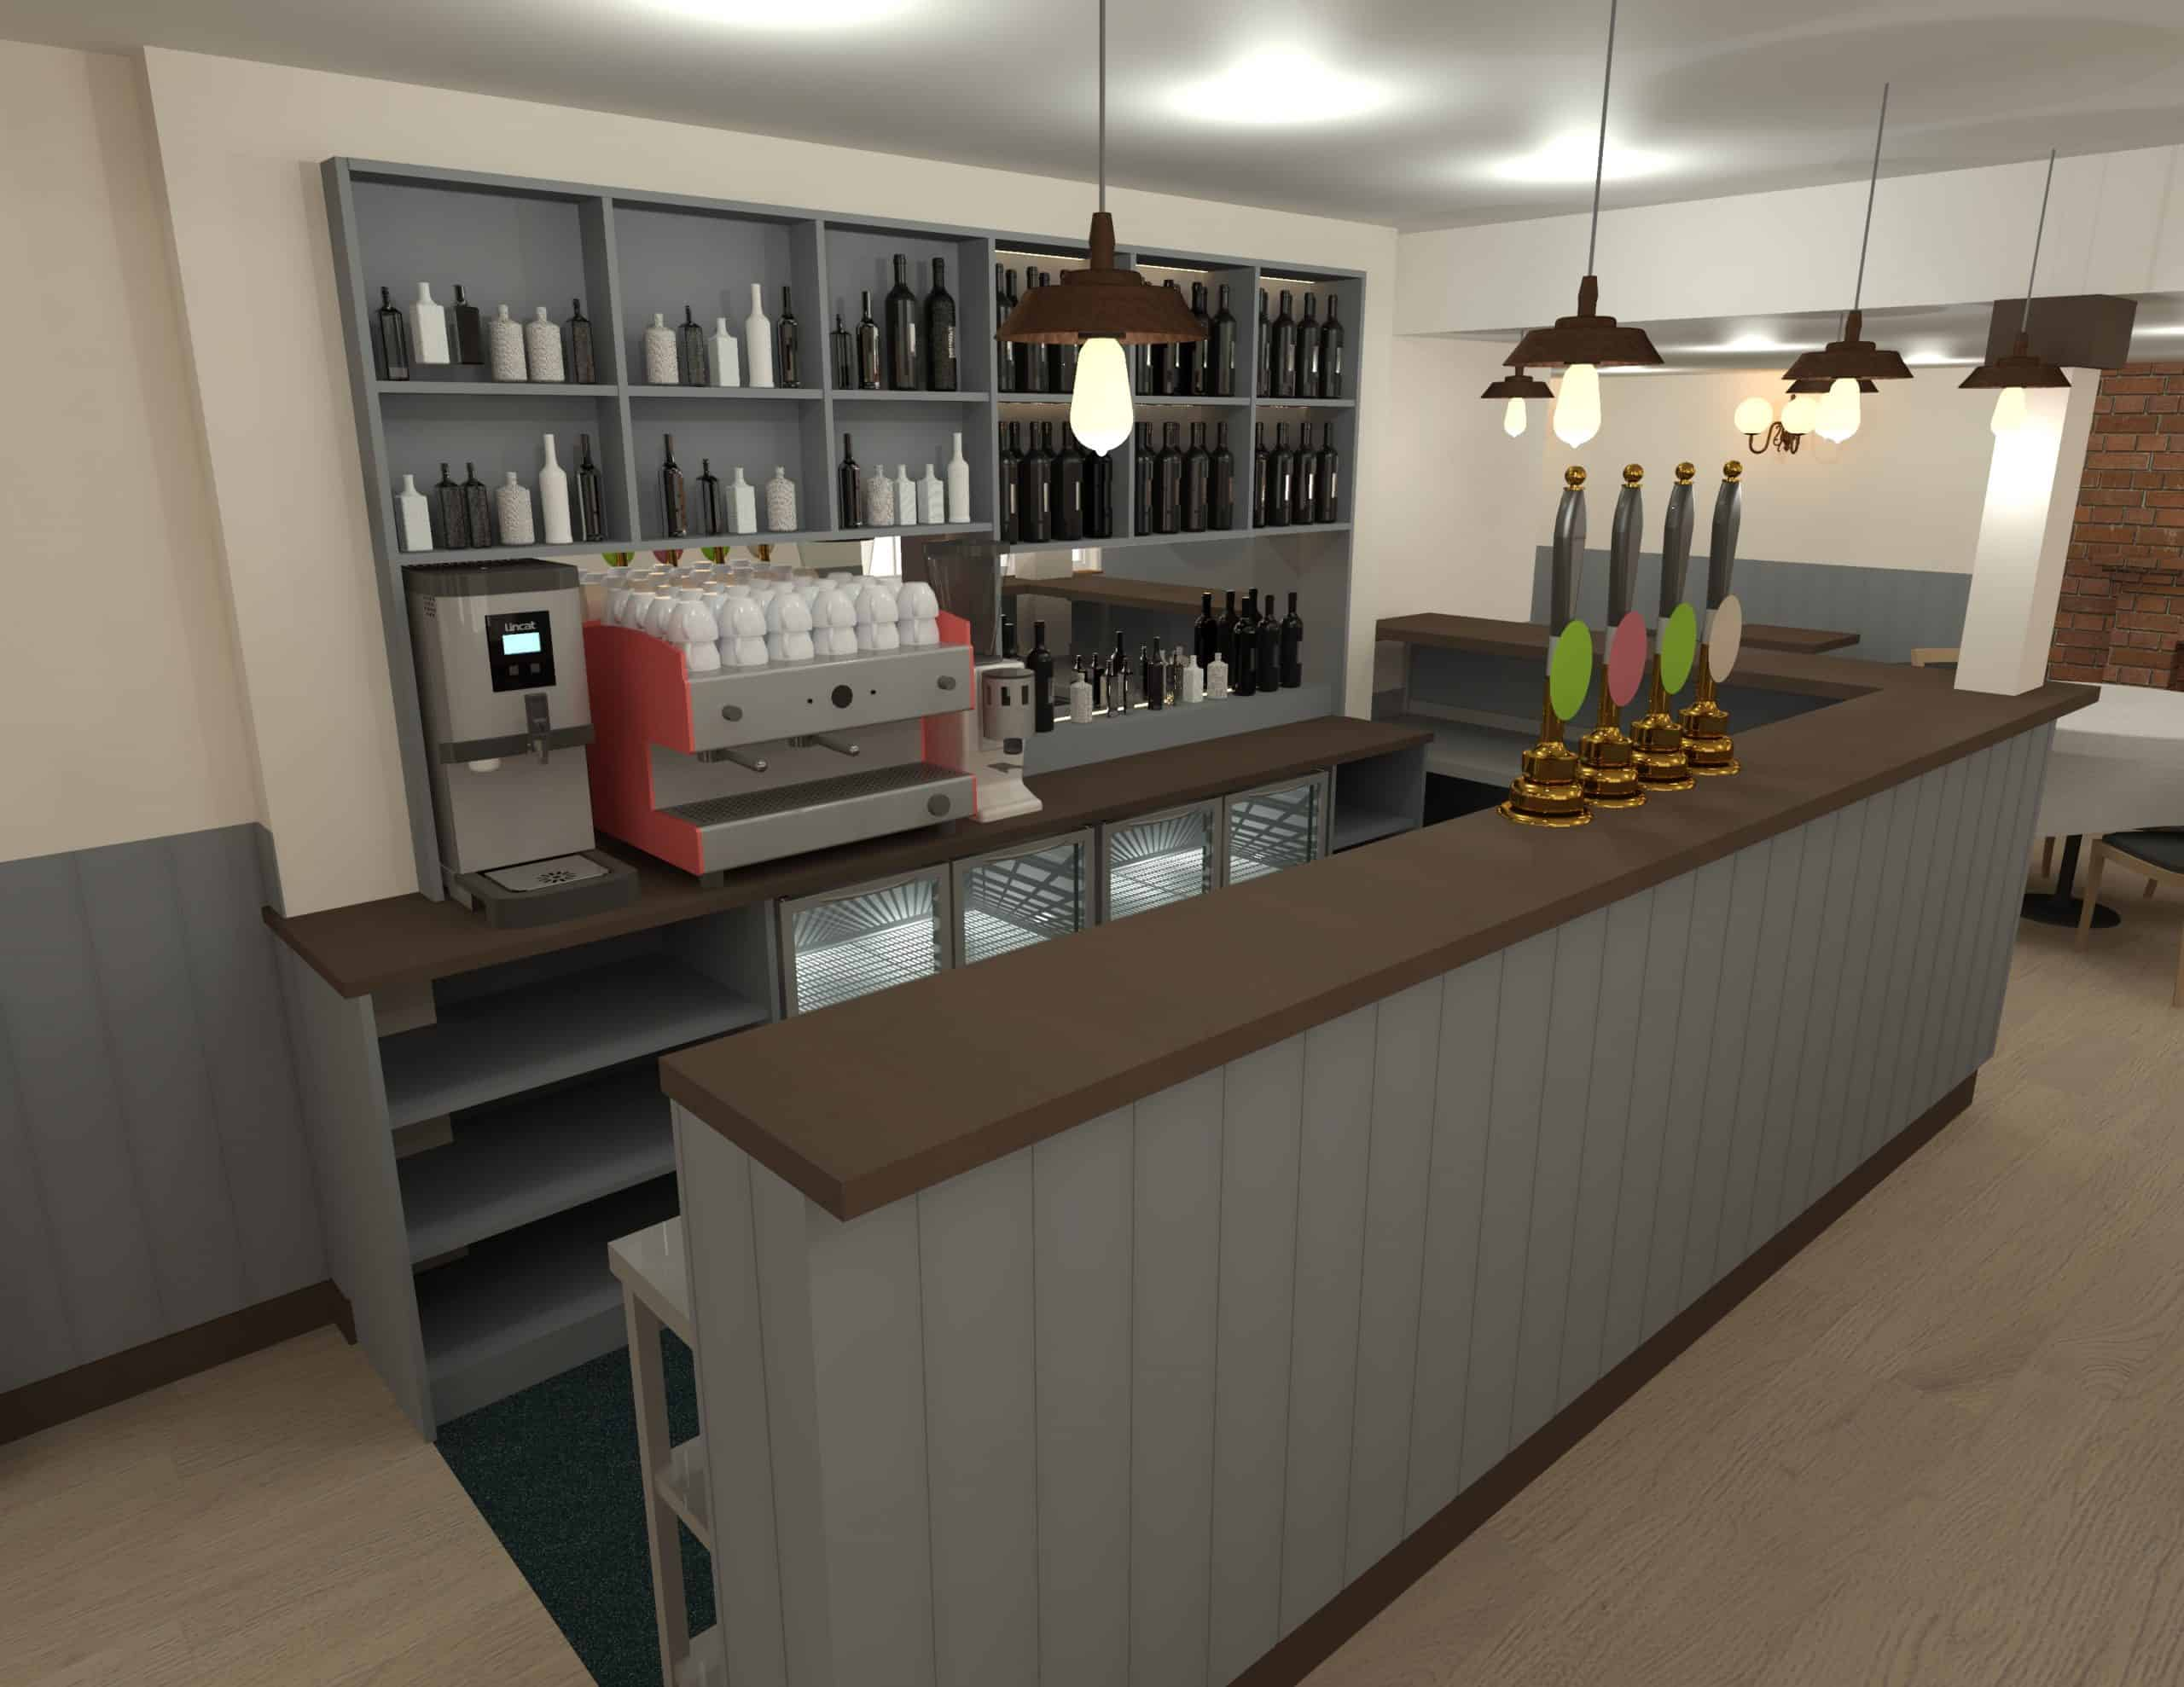 E1213 3Dmodel01 - Three Horseshoes, Briston-Temp0012